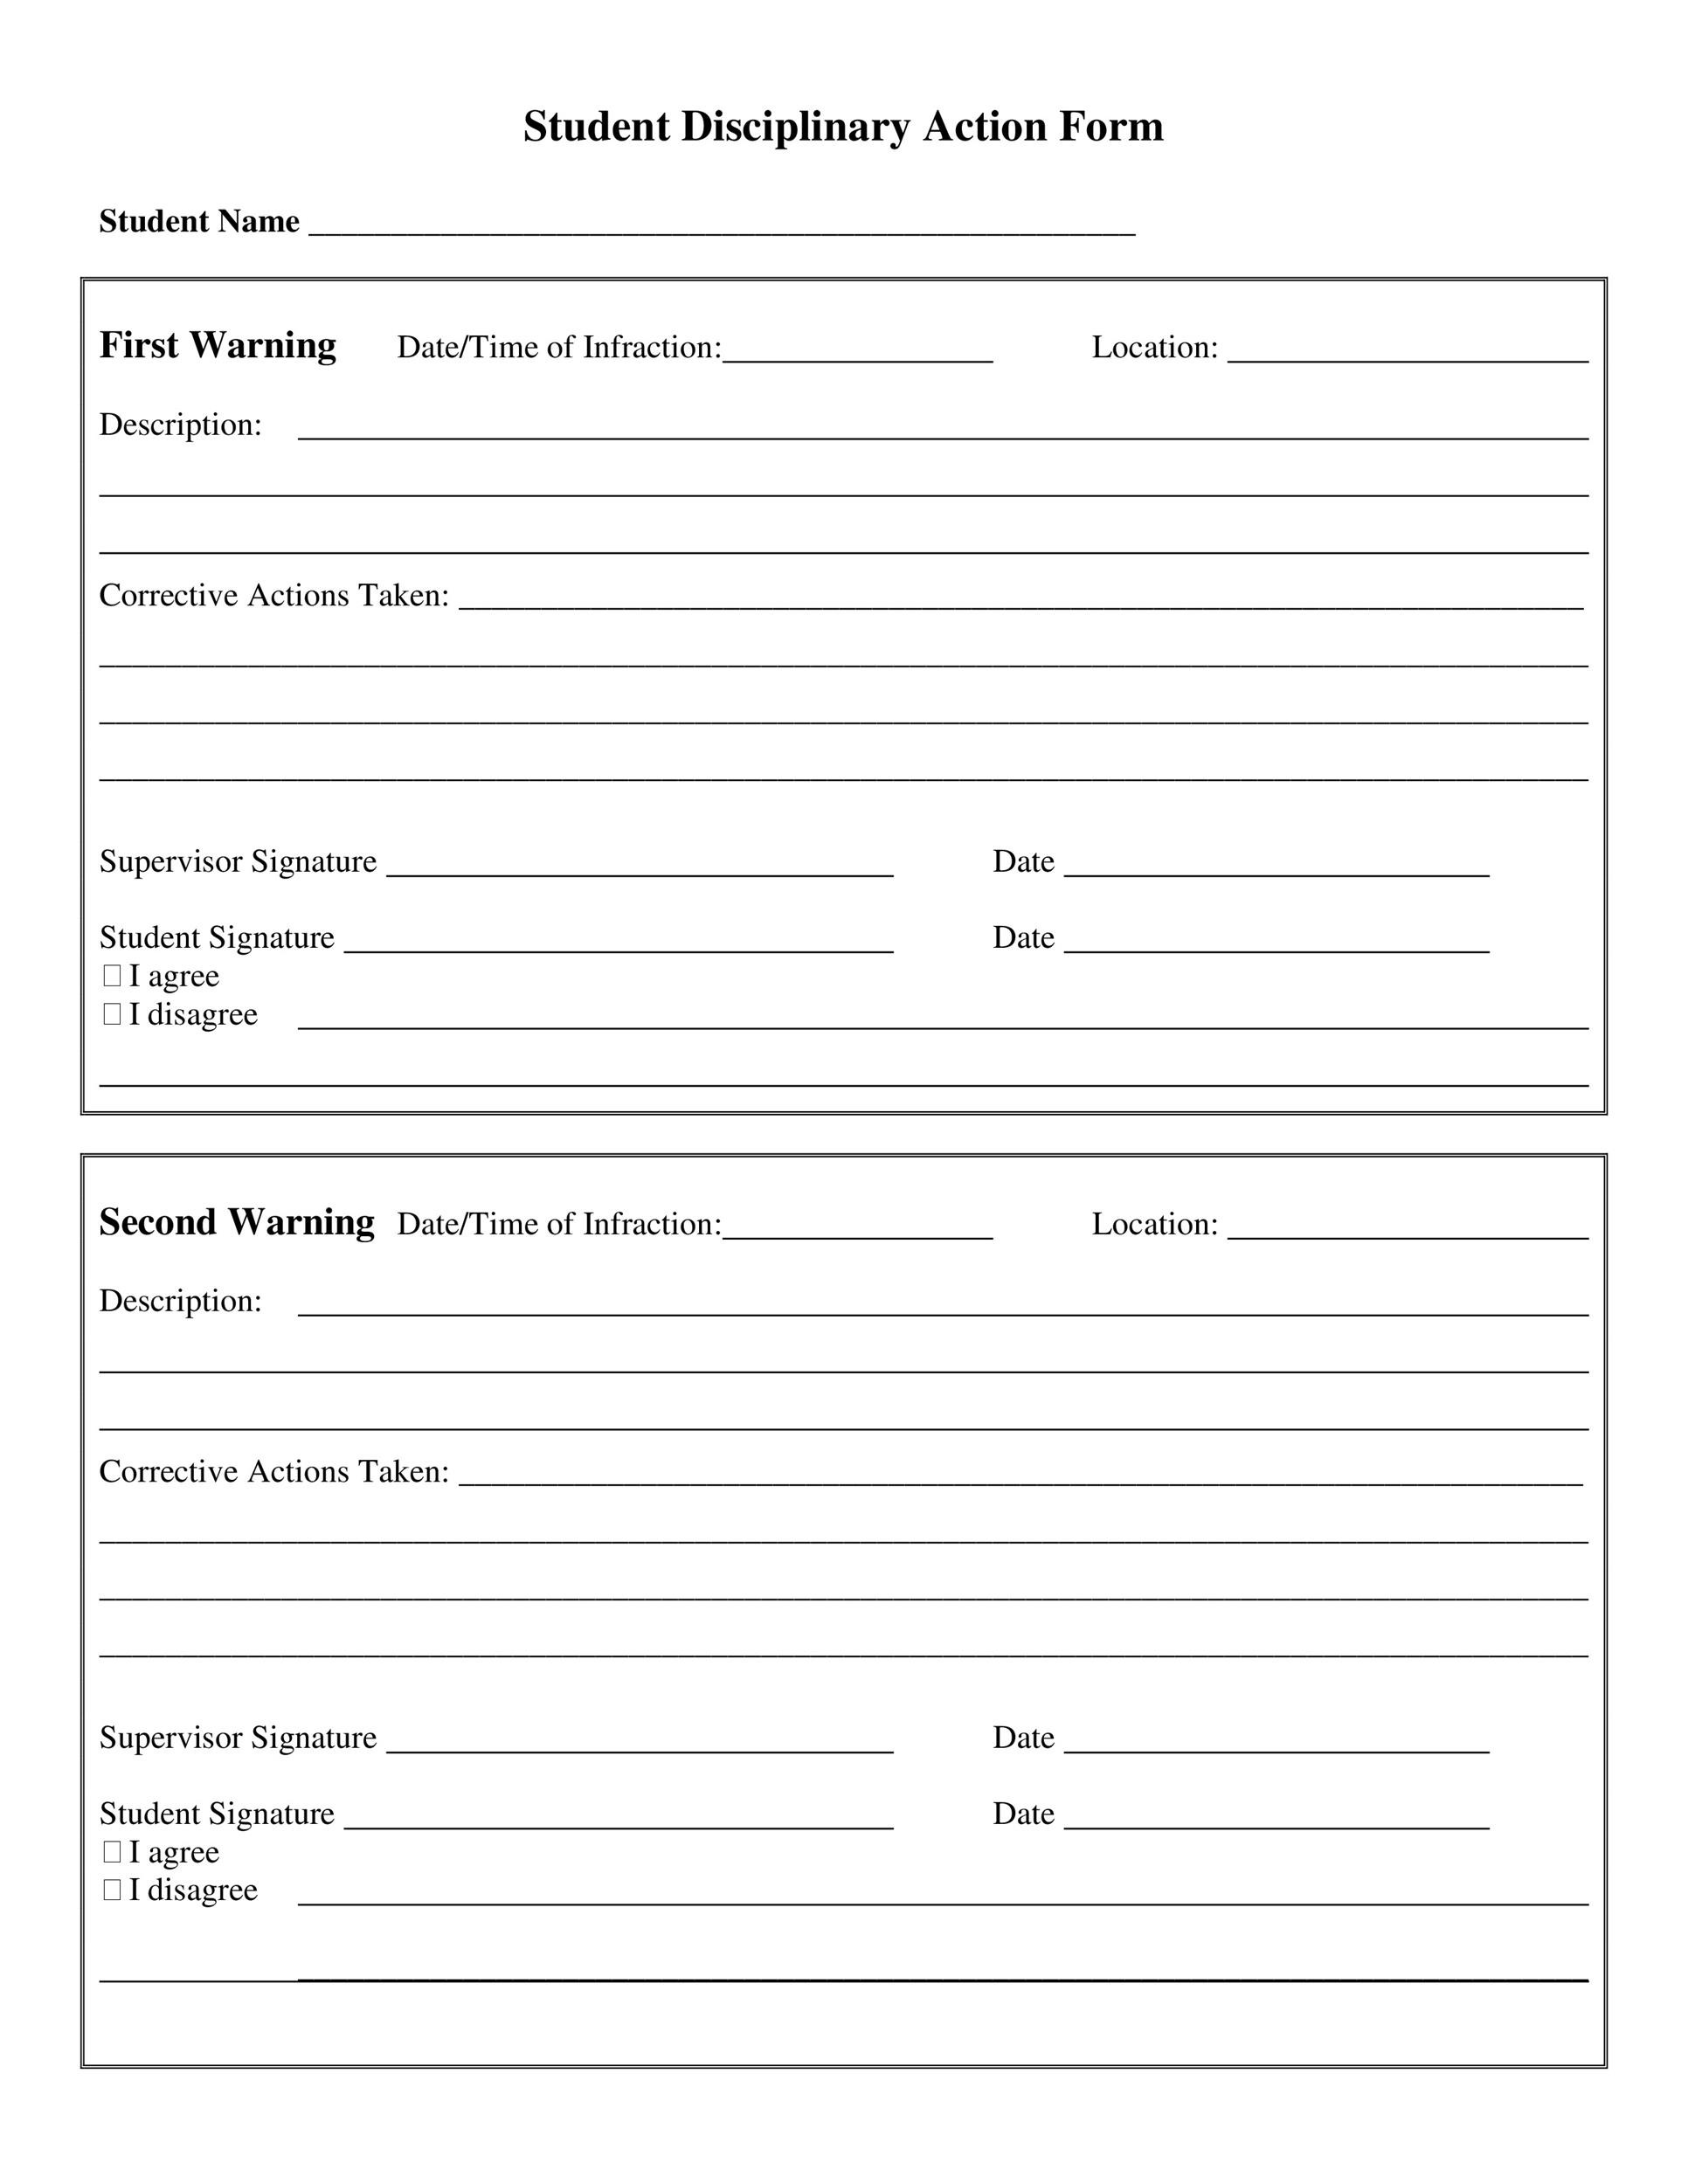 Employee Non-Disclosure Agreement Template